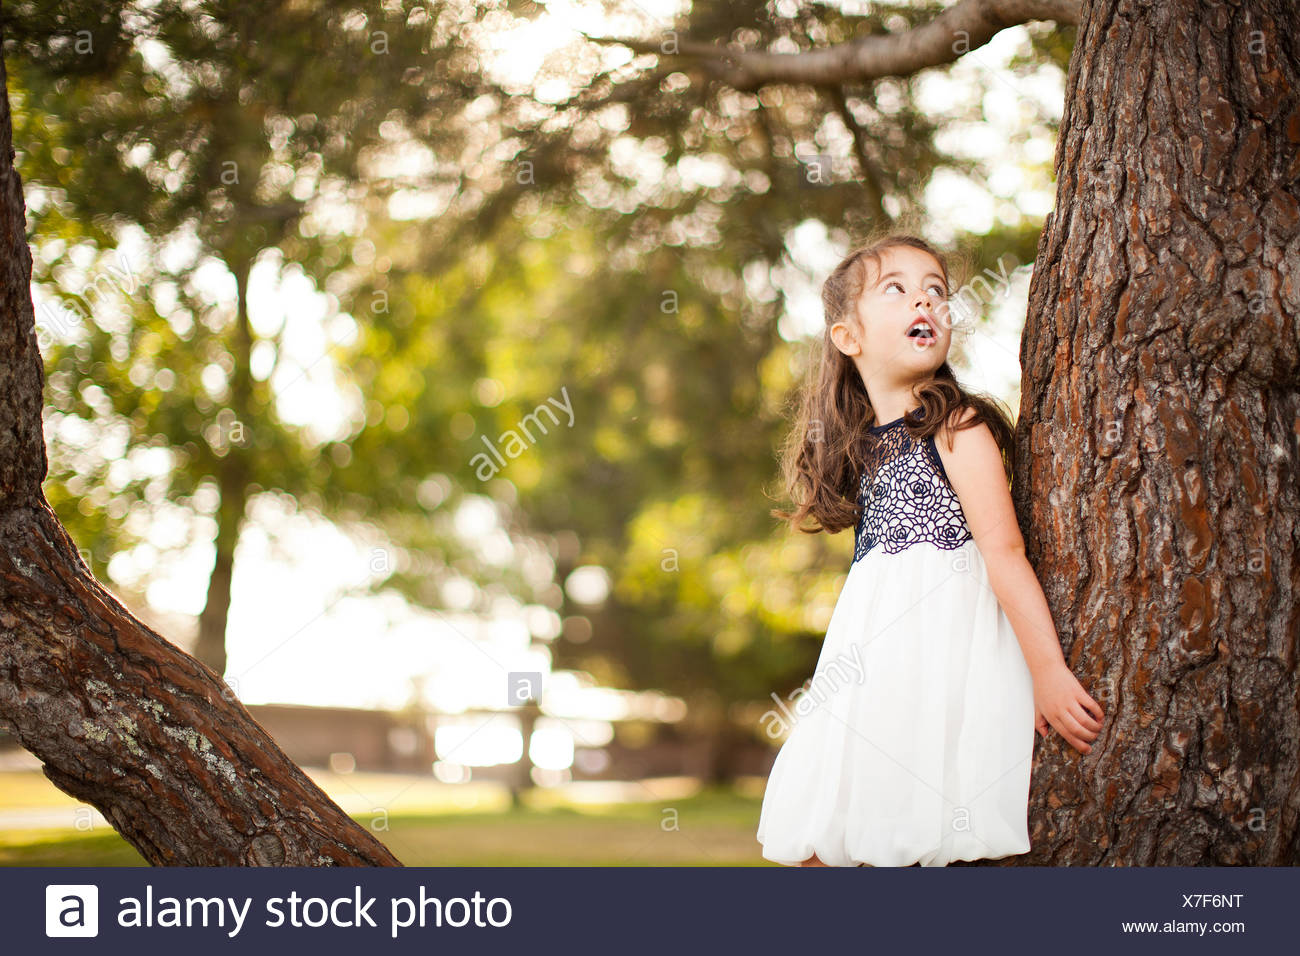 Portrait of girl leaning on tree trunk looking up - Stock Image